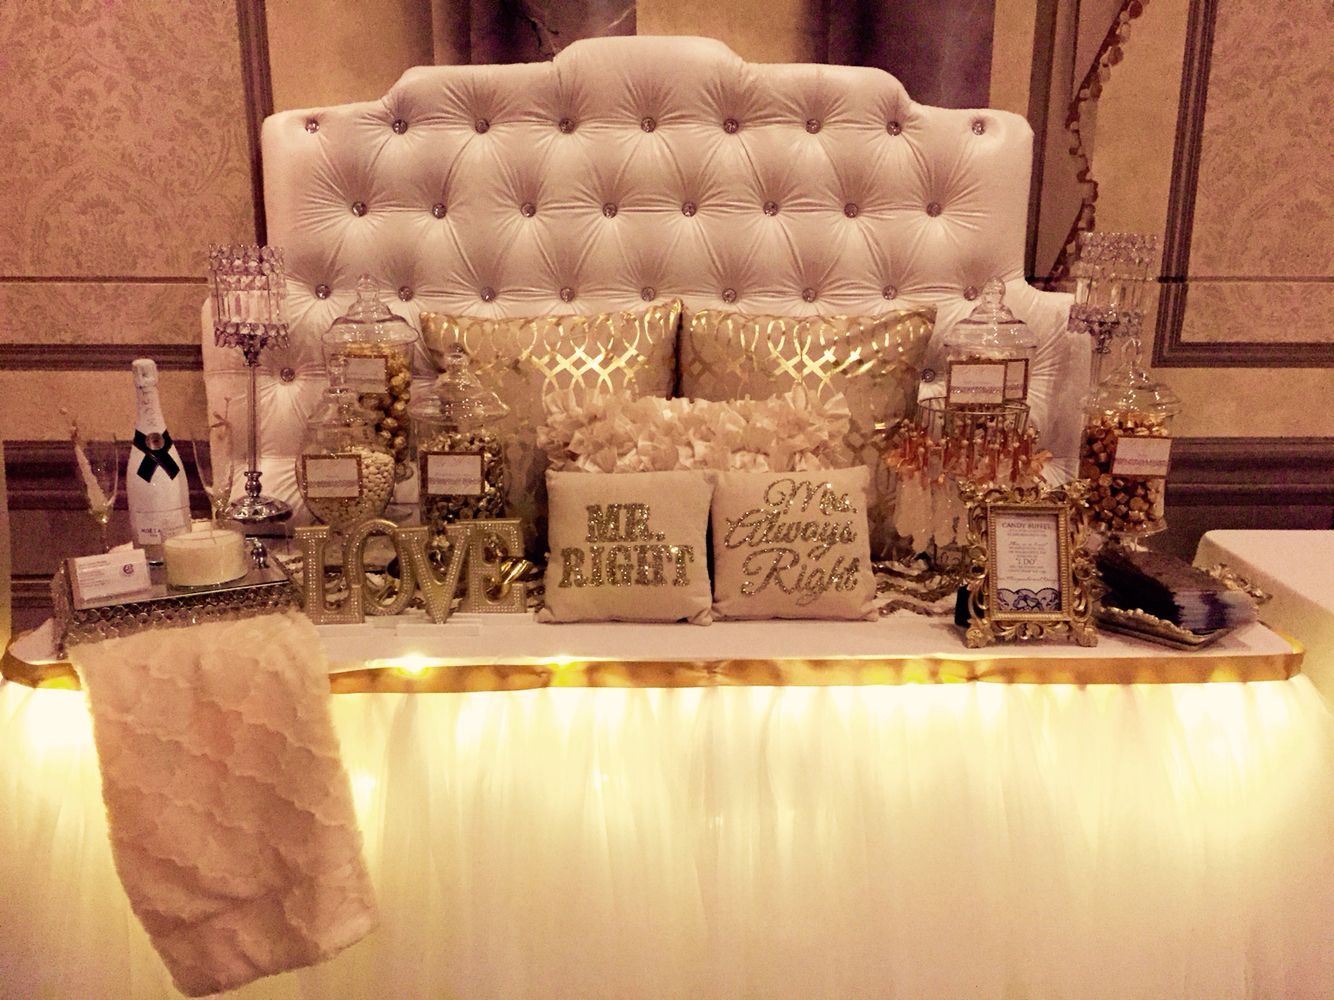 Buffet table skirting - White Gold And Champagne Candy Bar For A Wedding Reception Table Design And Tulle